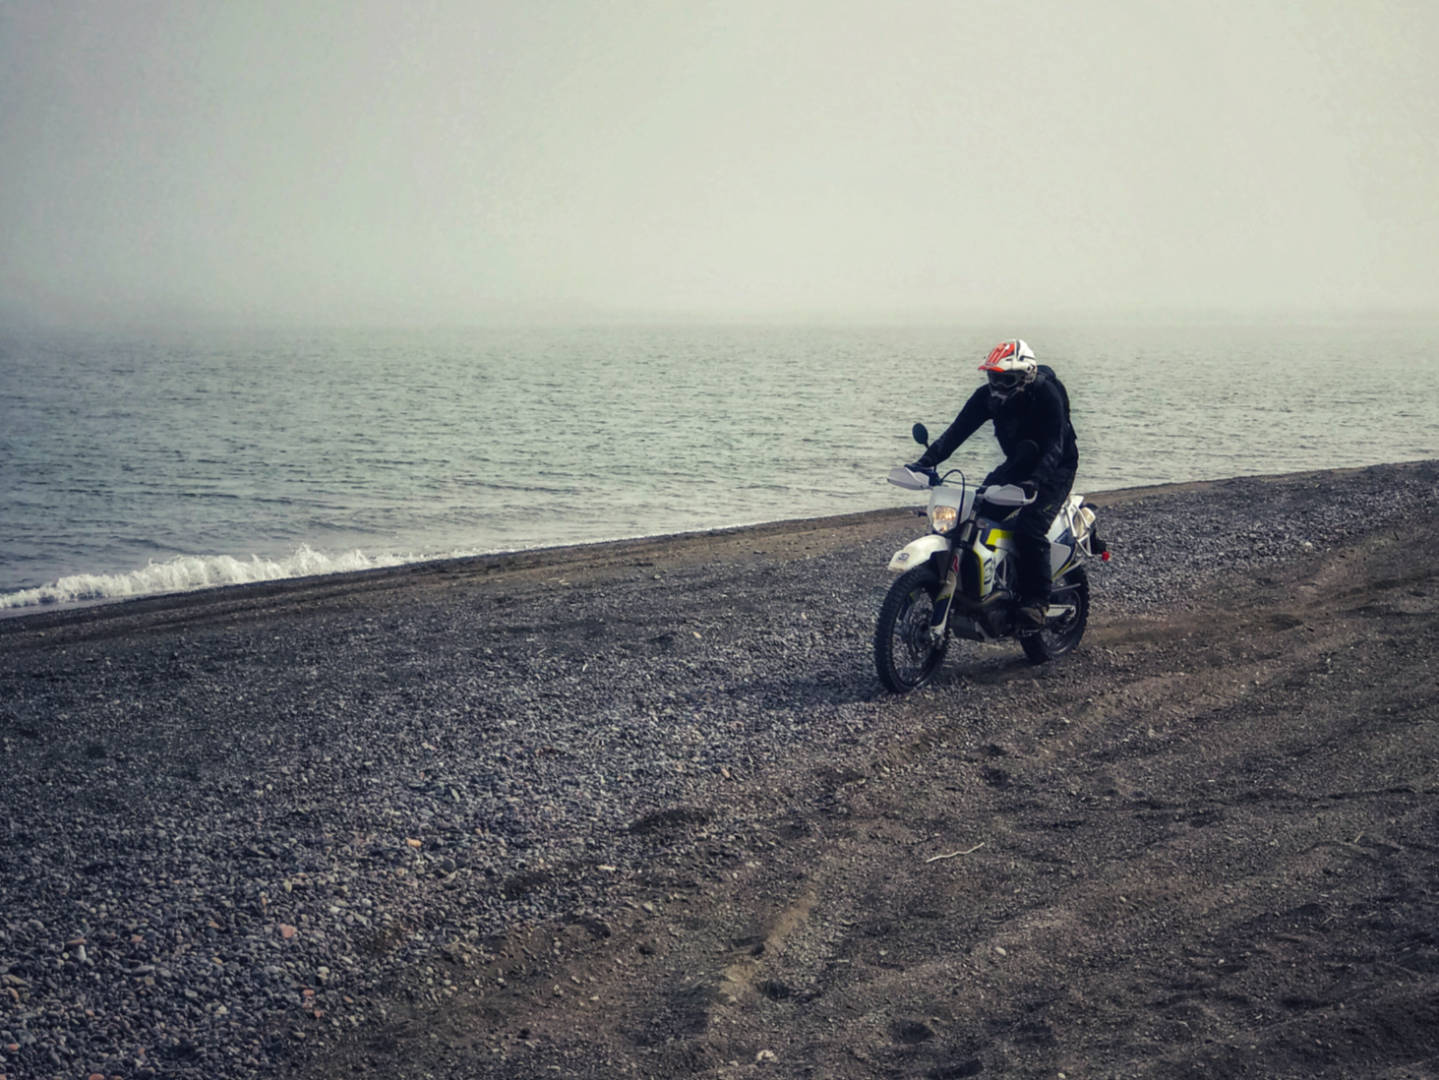 A photo of a Husqvarna enduro motorcycle on the beach at Martins Head, NB